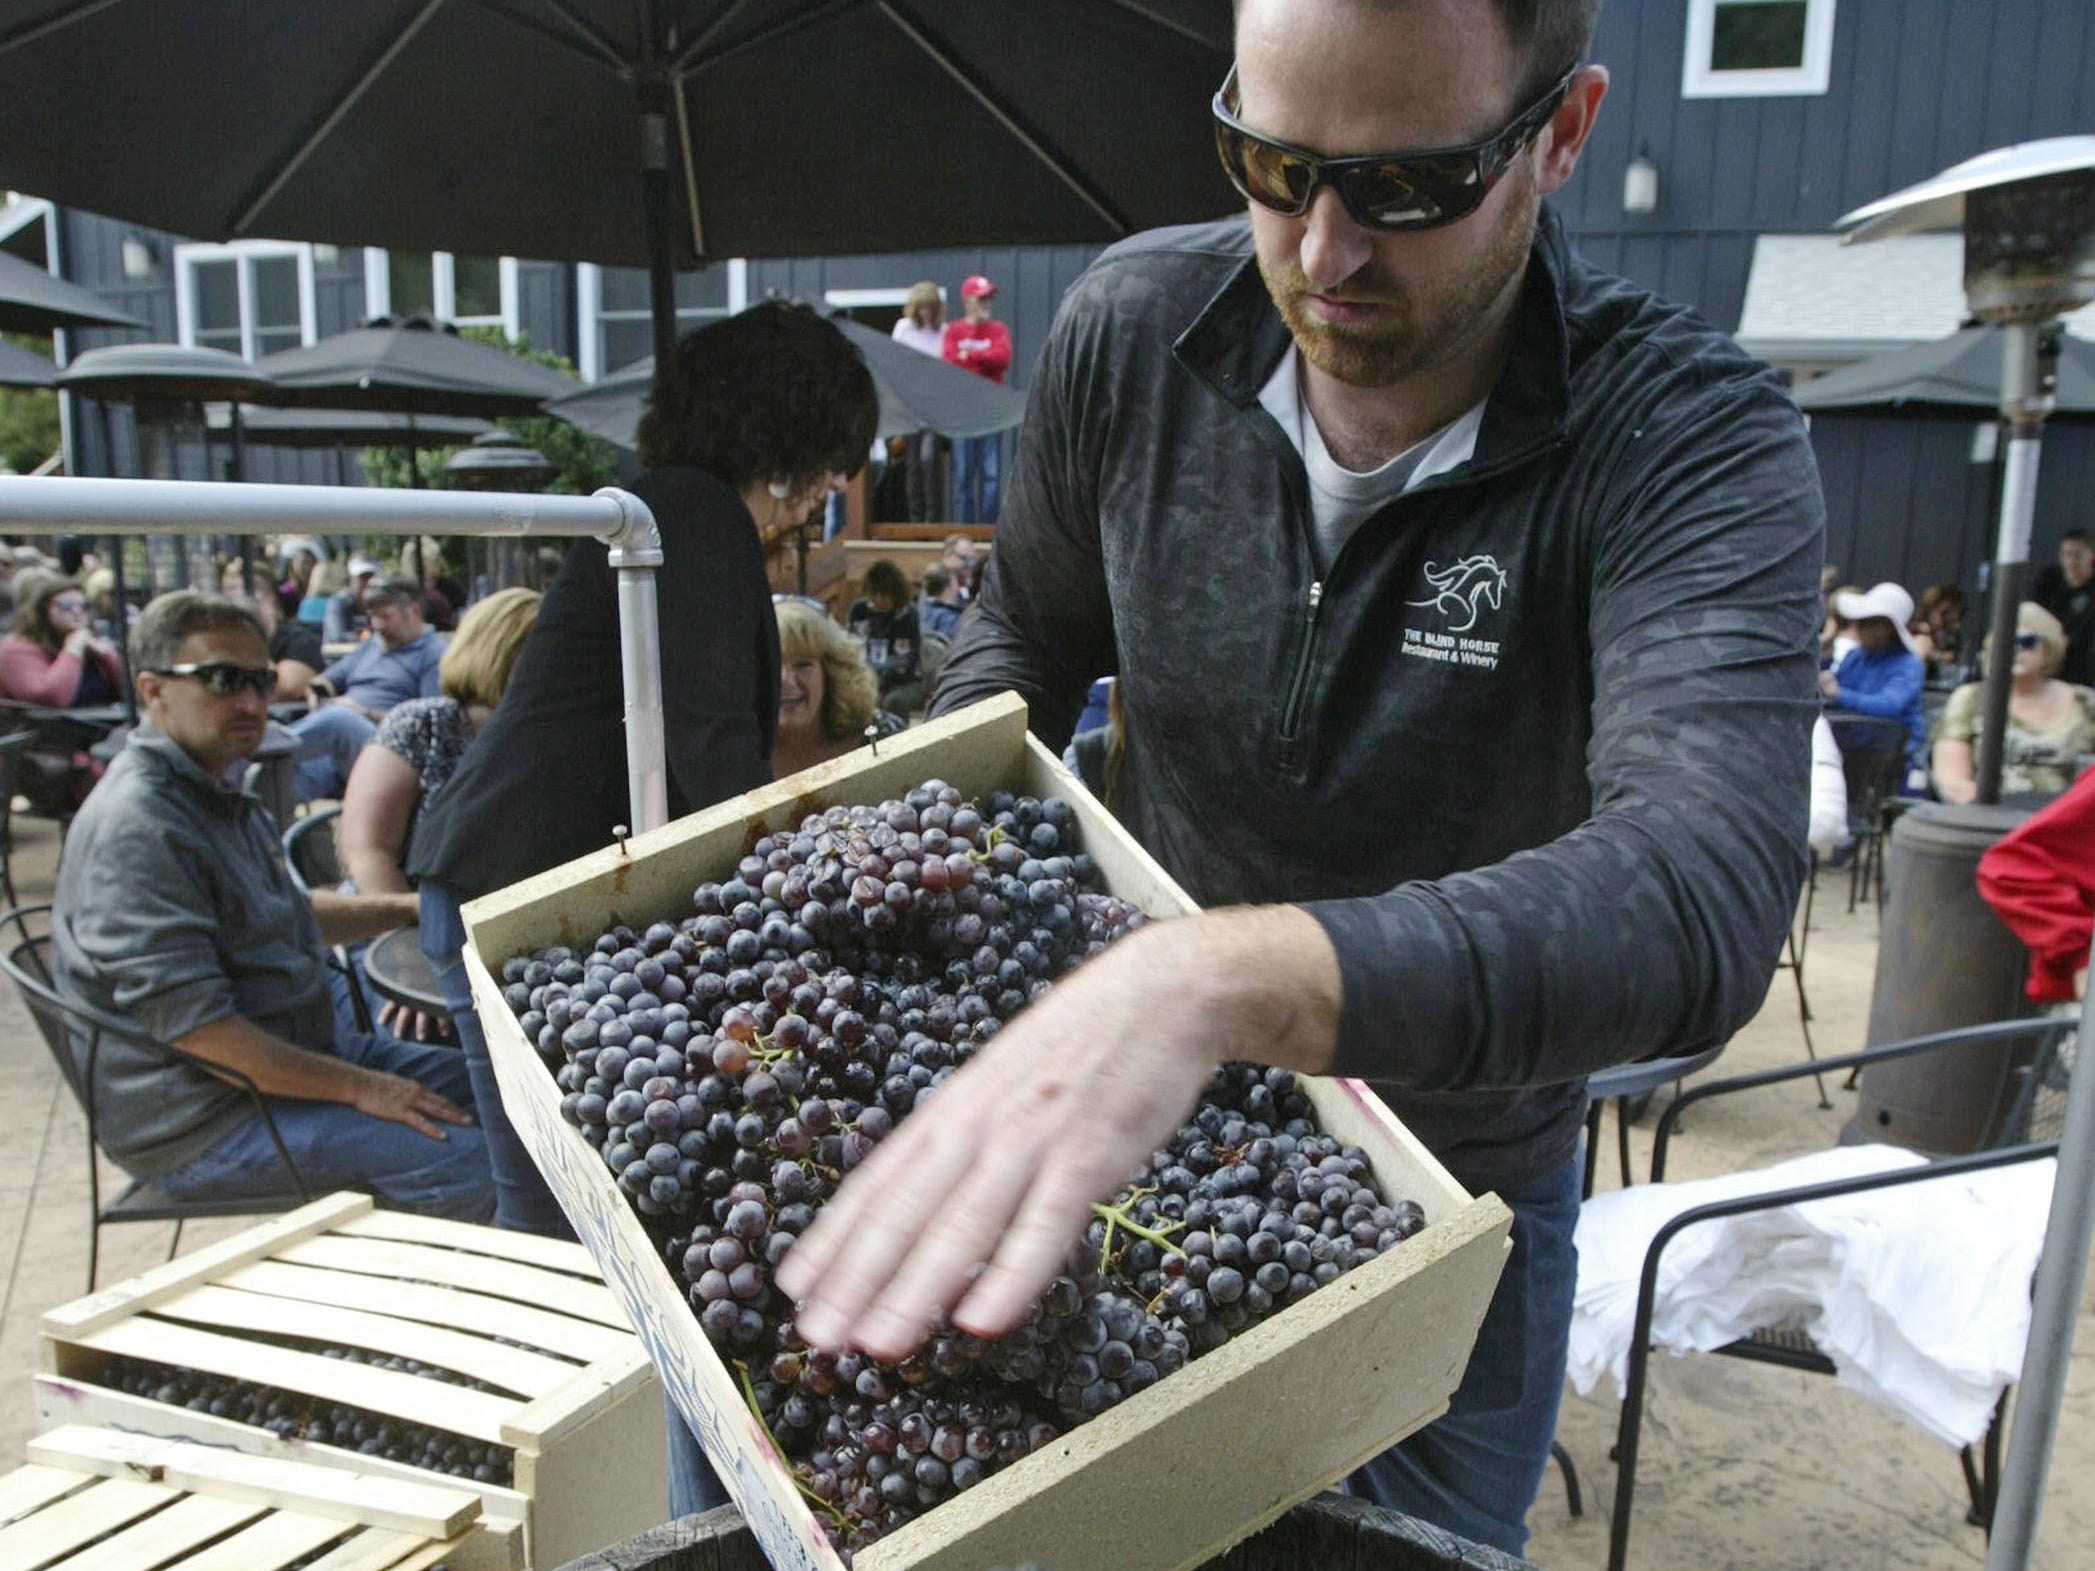 Assistant winemaker Patrick Regenwether loads grapes before the grape stomp at the Harvest Festival & Grape Stomp at The Blind Horse Restaurant and Winery, Saturday, September 22, 2018, in Kohler, Wis.